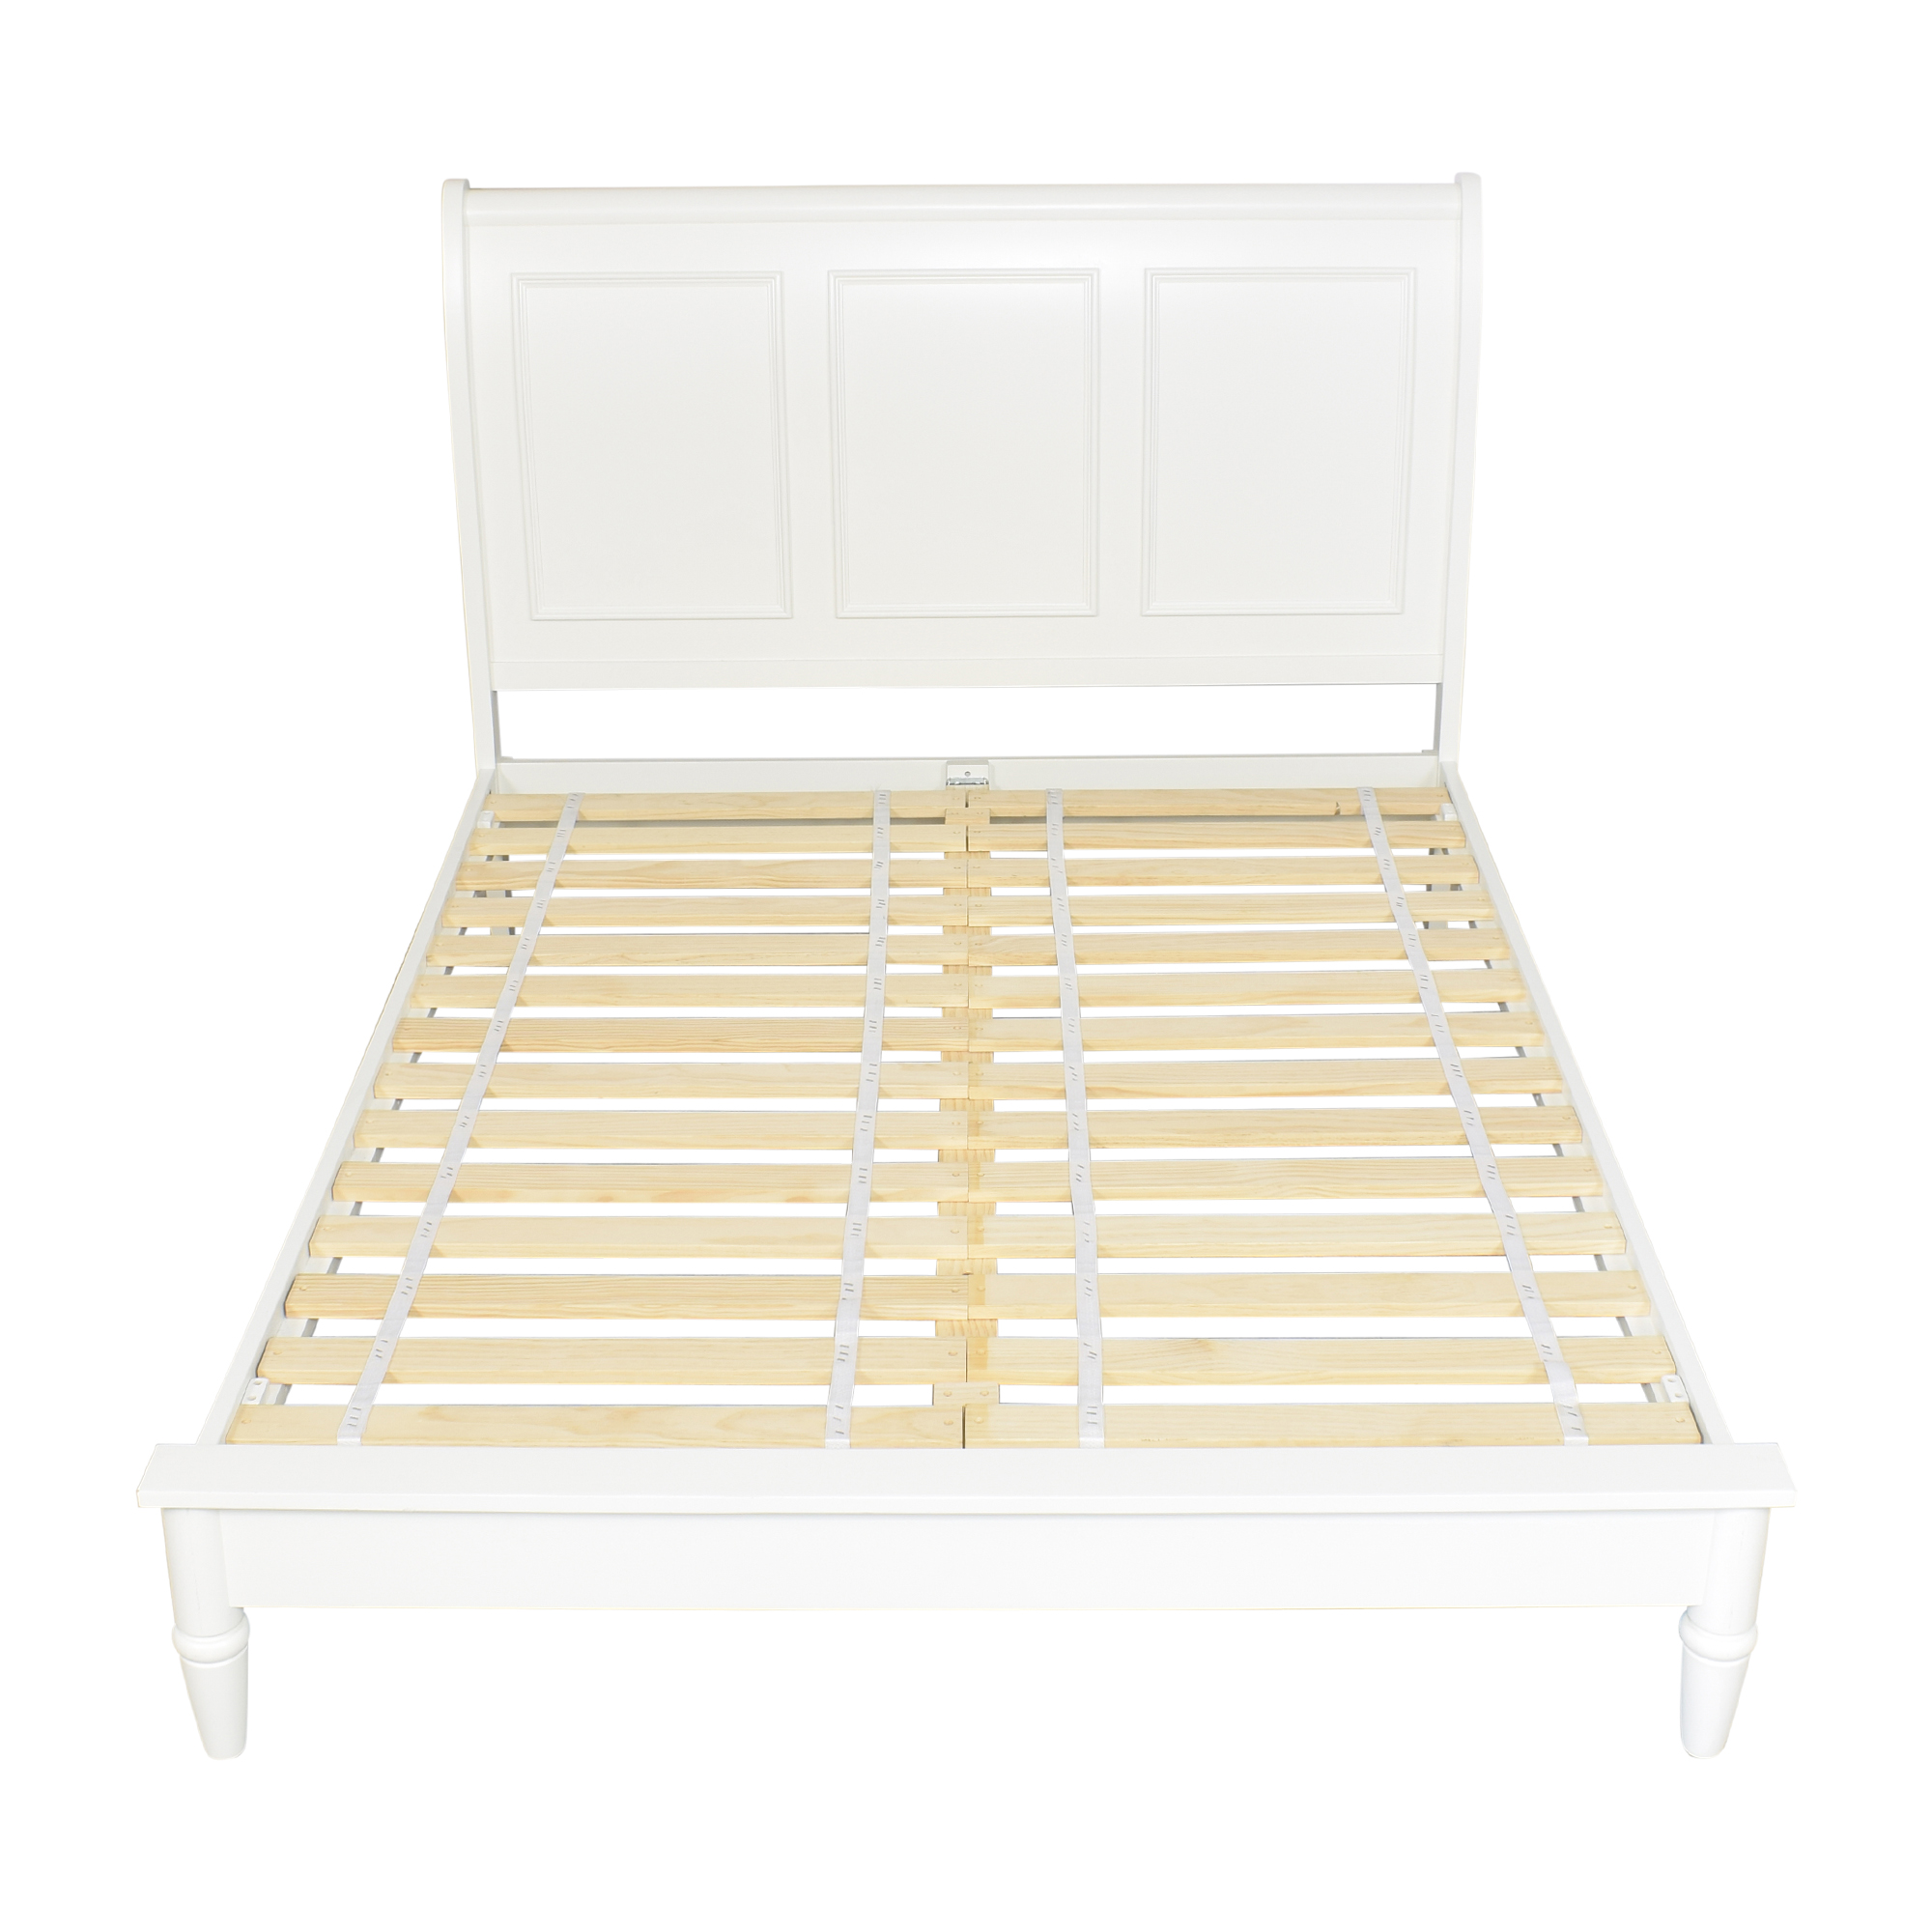 Pottery Barn Pottery Barn Crosby Queen Bed price